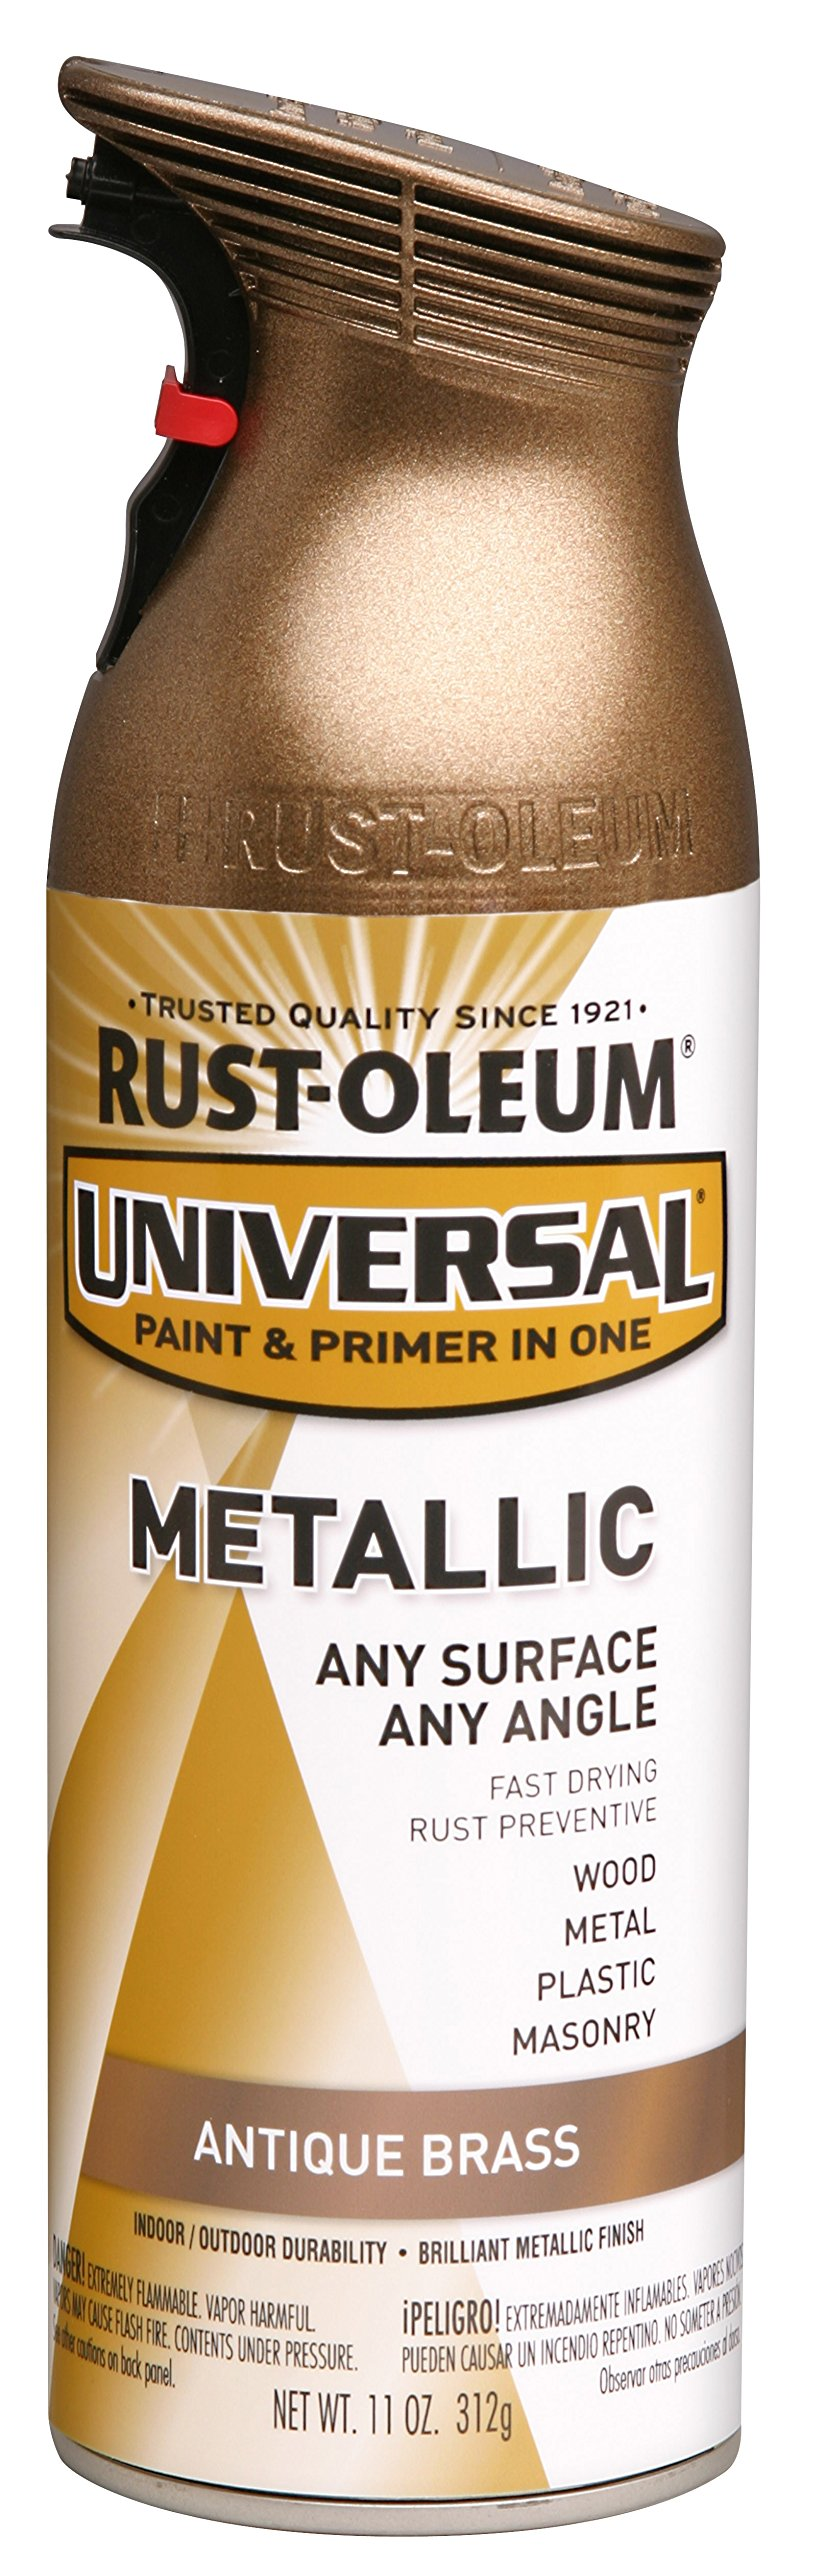 Rust-Oleum 260728 Universal All Surface Spray Paint, 11 oz, Metallic Antique Brass by Rust-Oleum (Image #1)